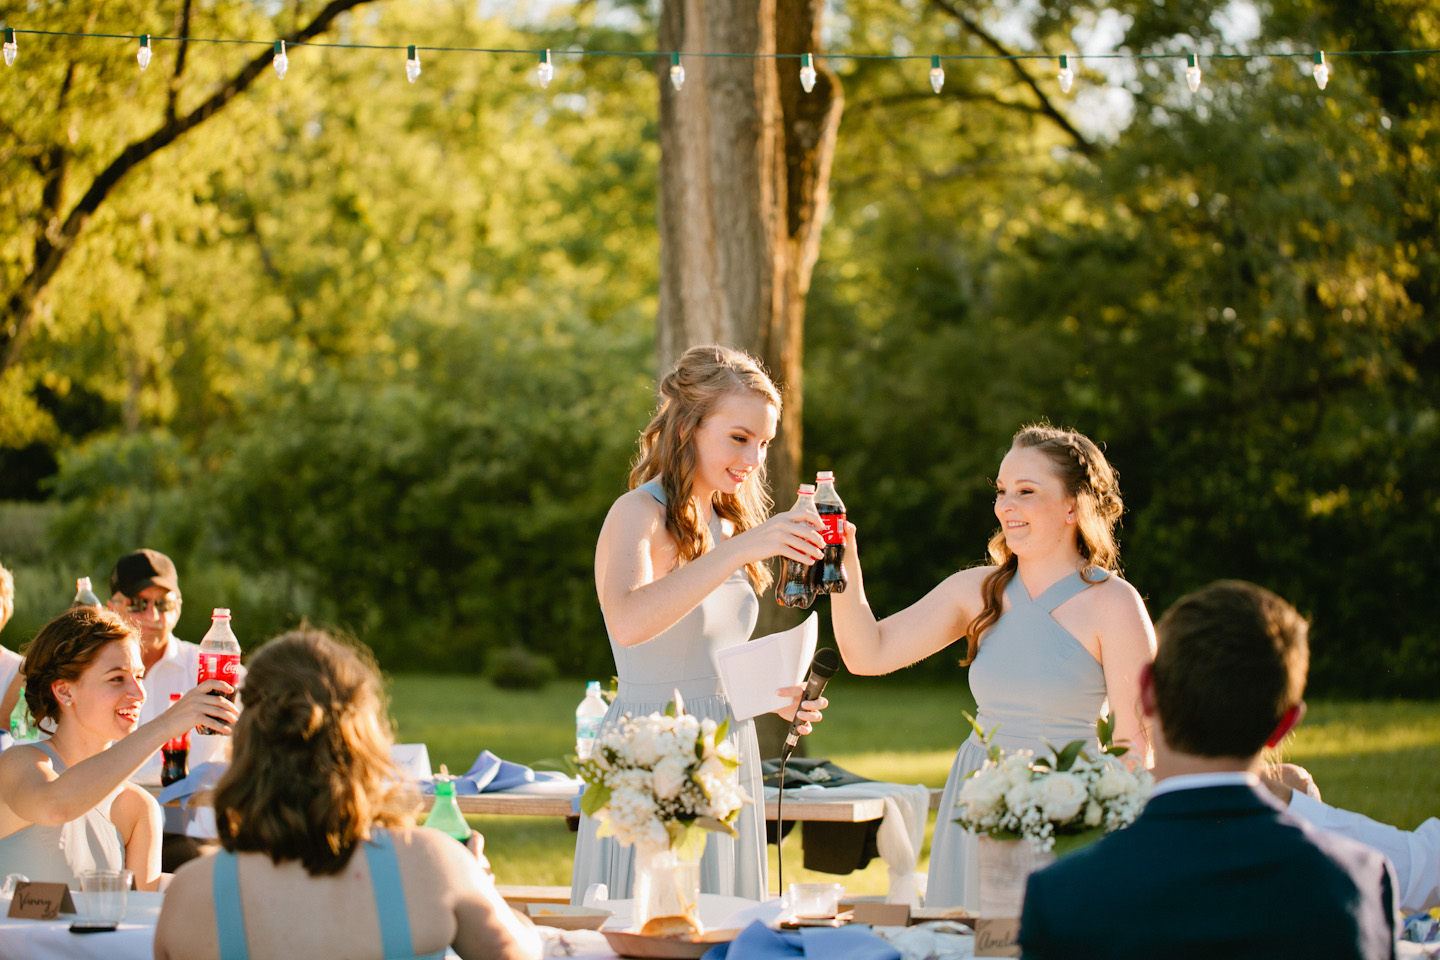 sunset wedding reception by lake in Iowa